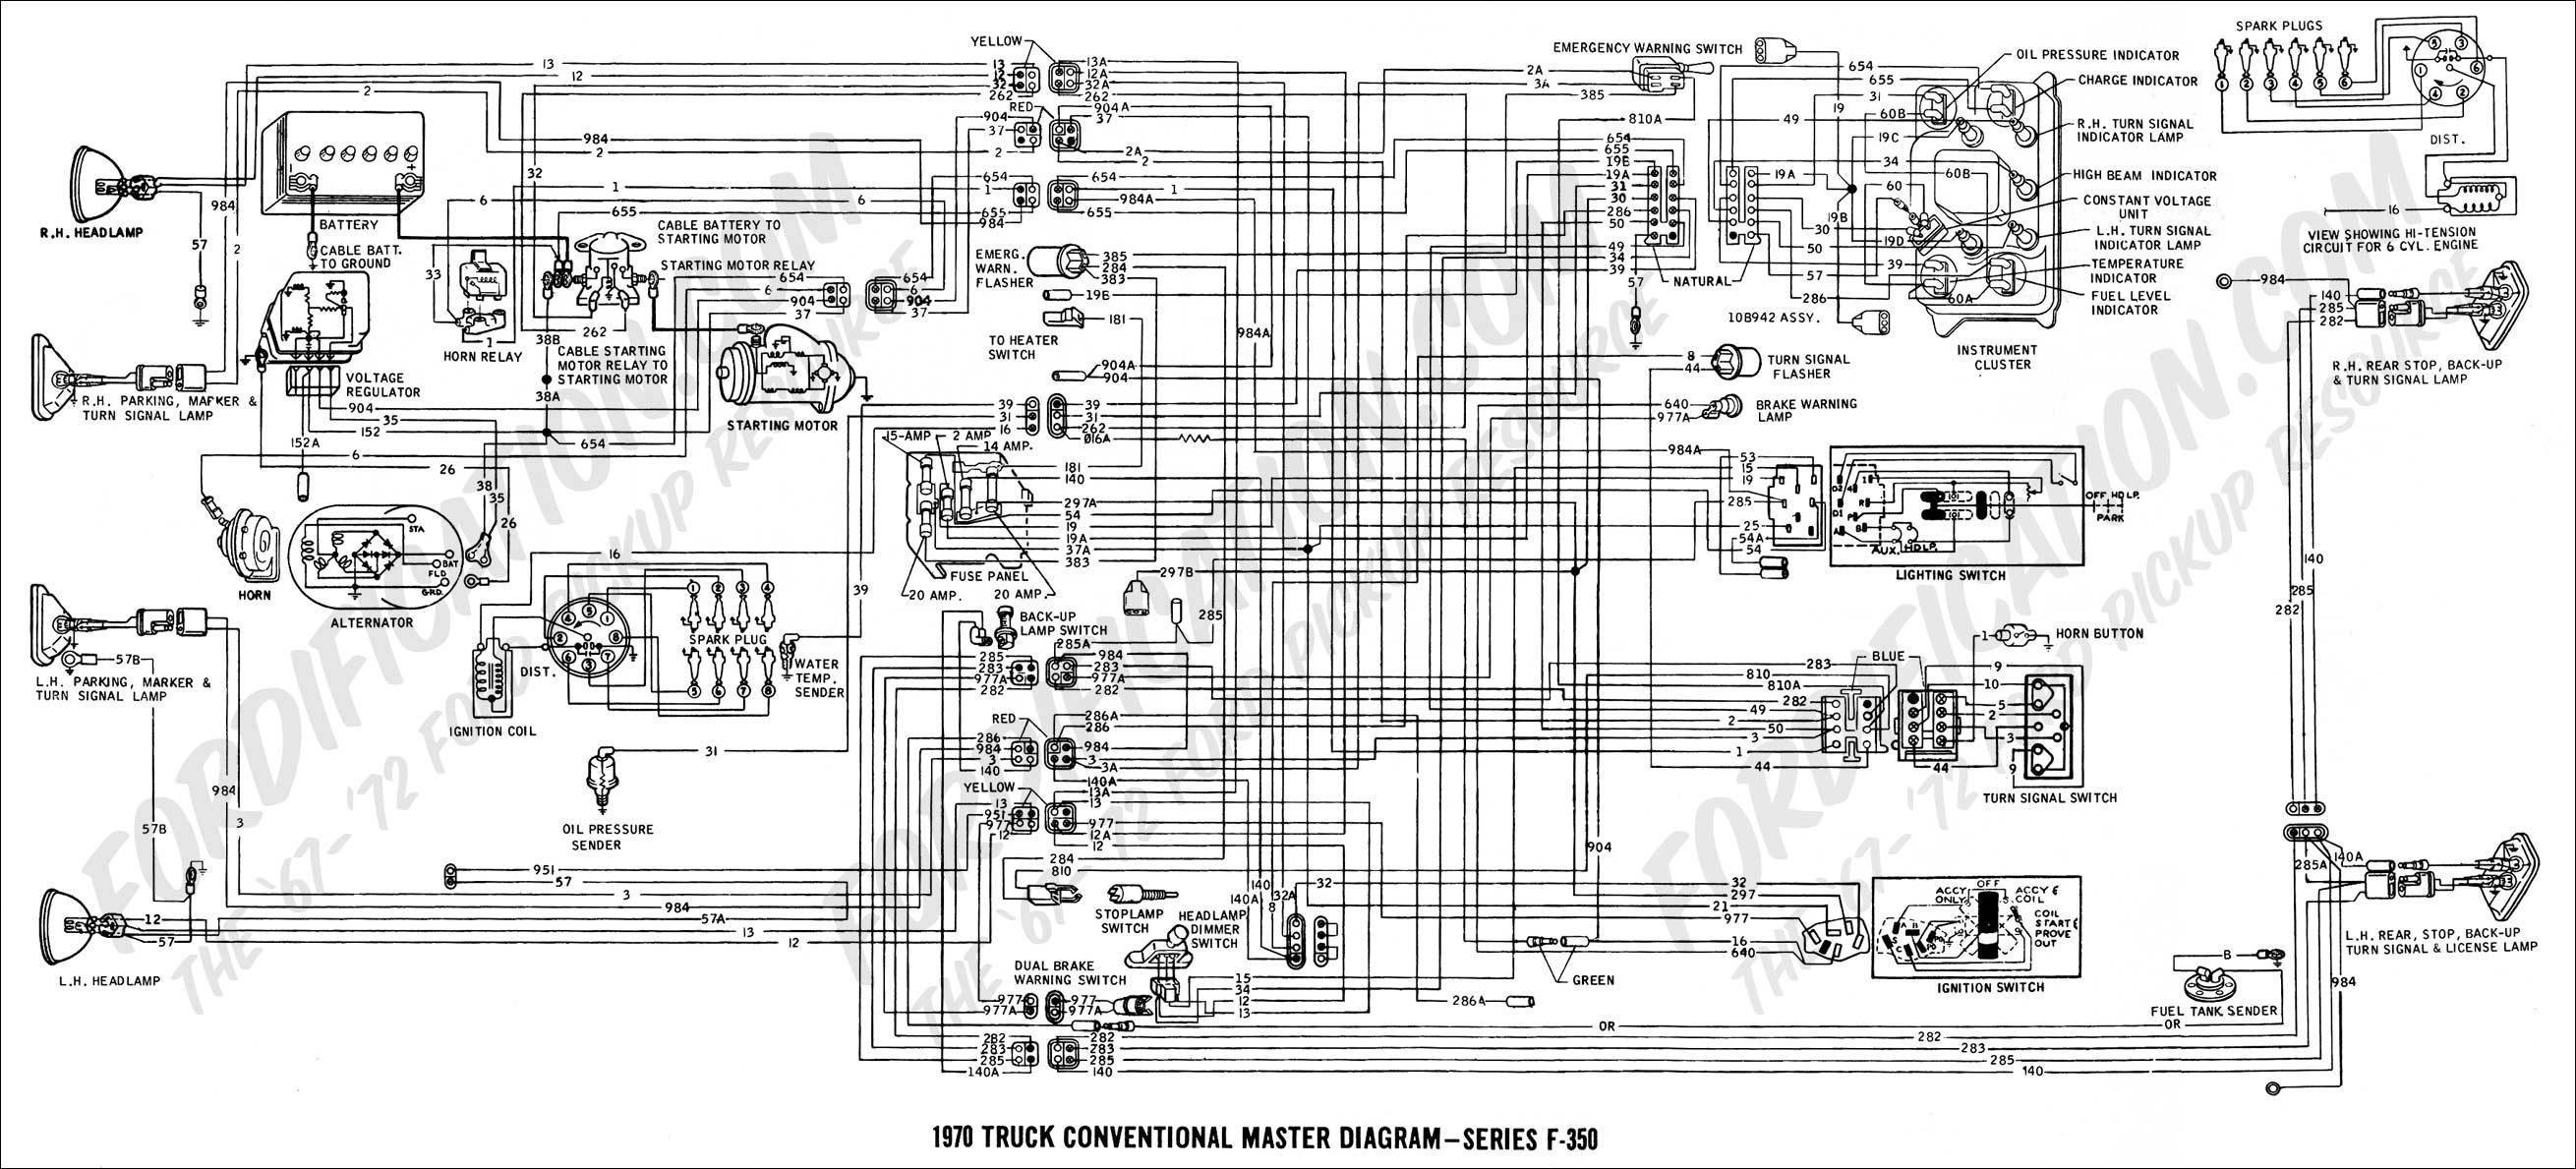 [SCHEMATICS_4CA]  1987 Chevy Truck Air Conditioning Diagram Wiring Schematic Diagram Base  Website Wiring Schematic - ALIGNMENTVENNDIAGRAM.HABITANTS-BERGEYRE.FR | Kenworth Truck Engine Diagram |  | Diagram Base Website Full Edition - habitants-bergeyre